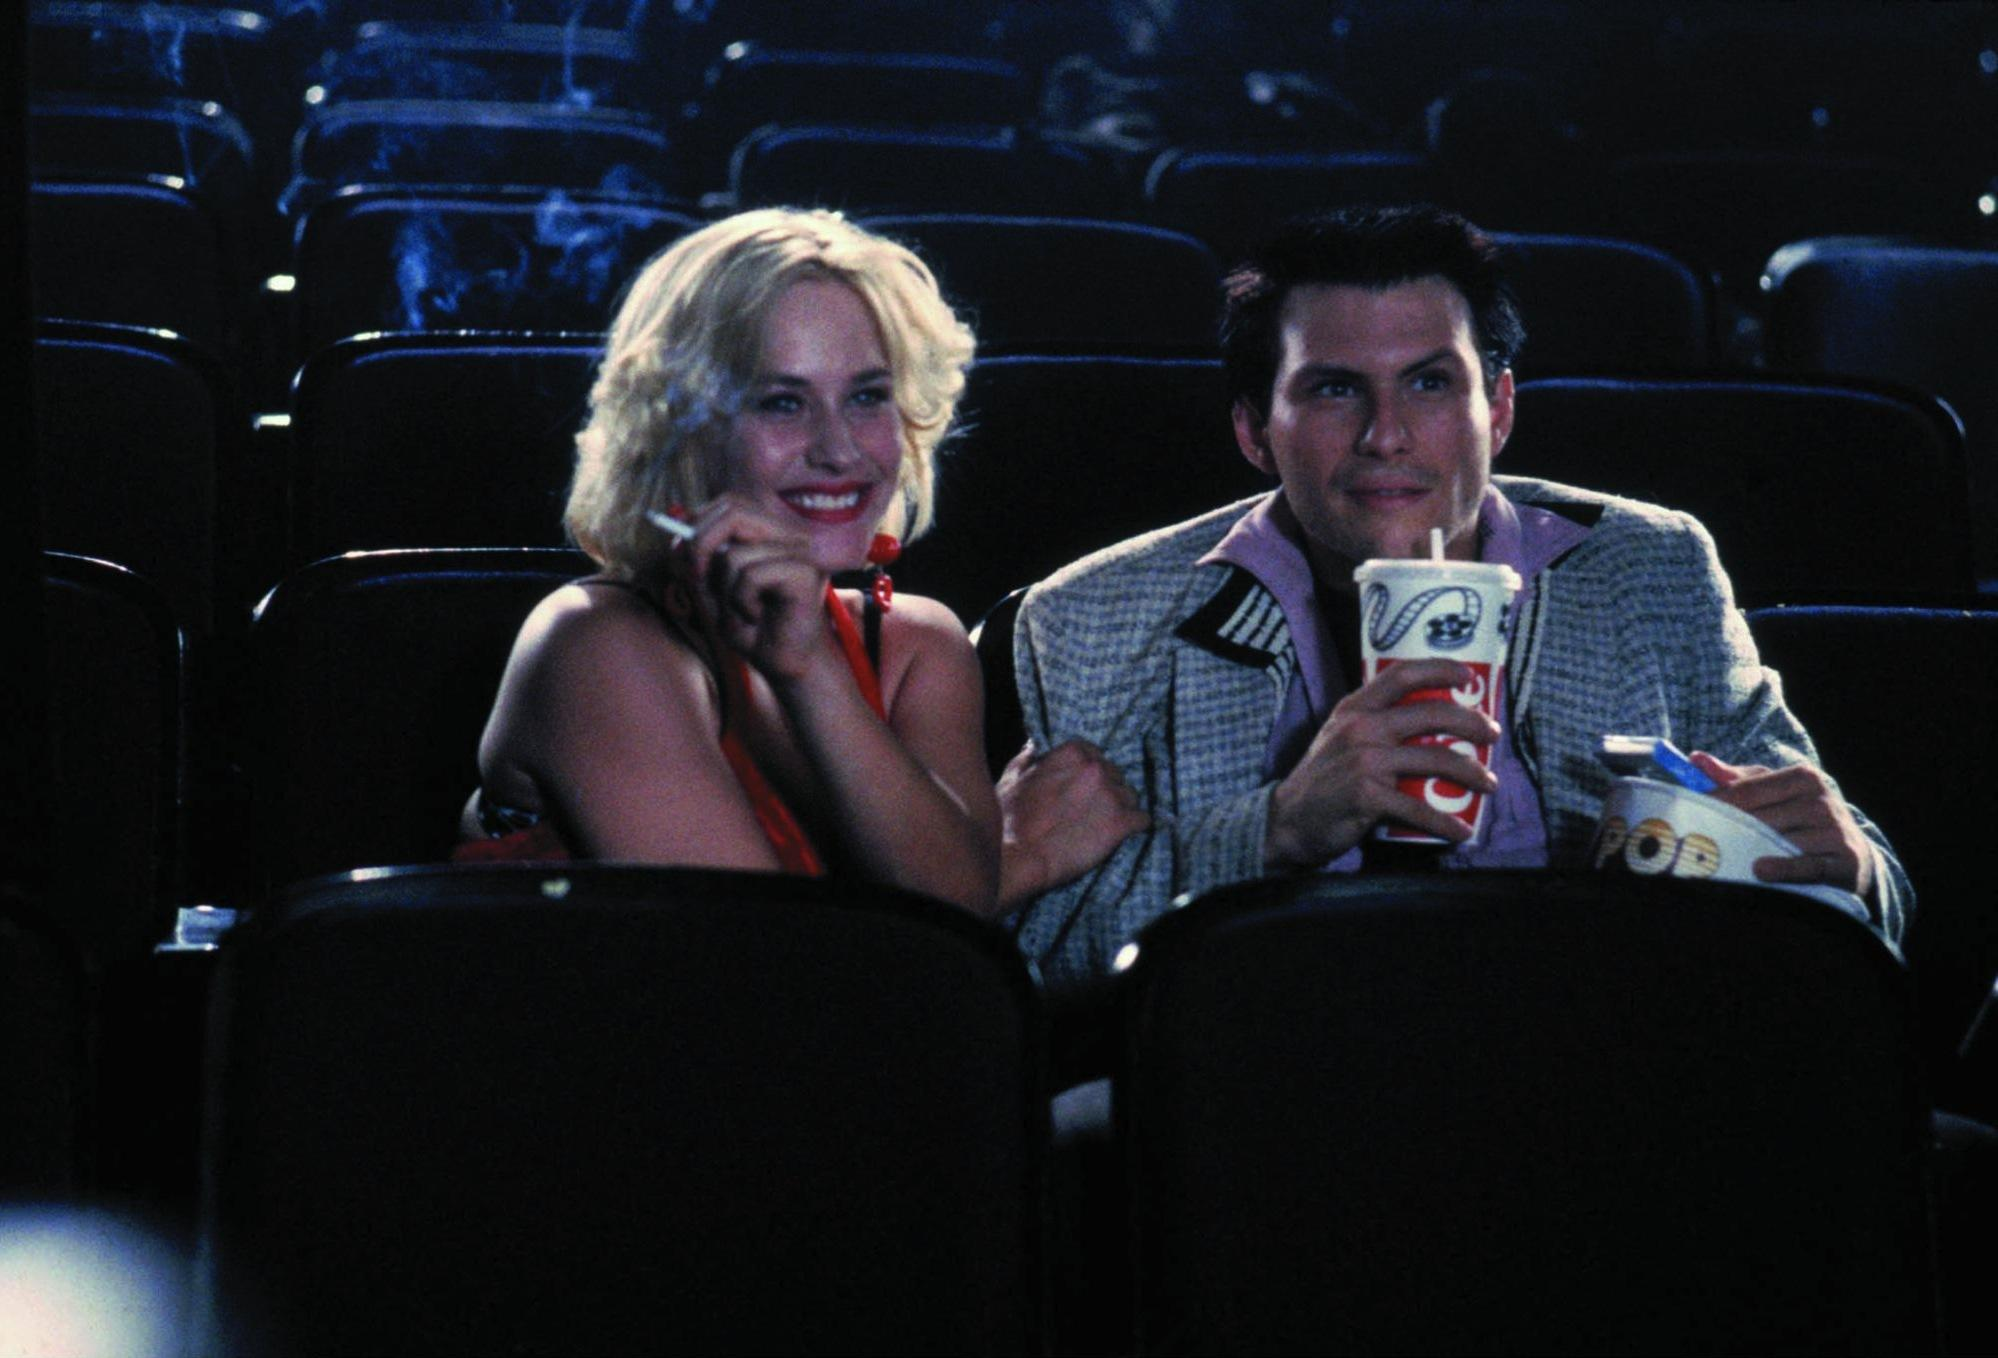 an introduction to the movie ture romance by quentin tarantino Tarantino talks about tony scott and the movie from his first ever sold screenplay from the q & a with jeff goldsmith podcast (good podcast for film geeks.